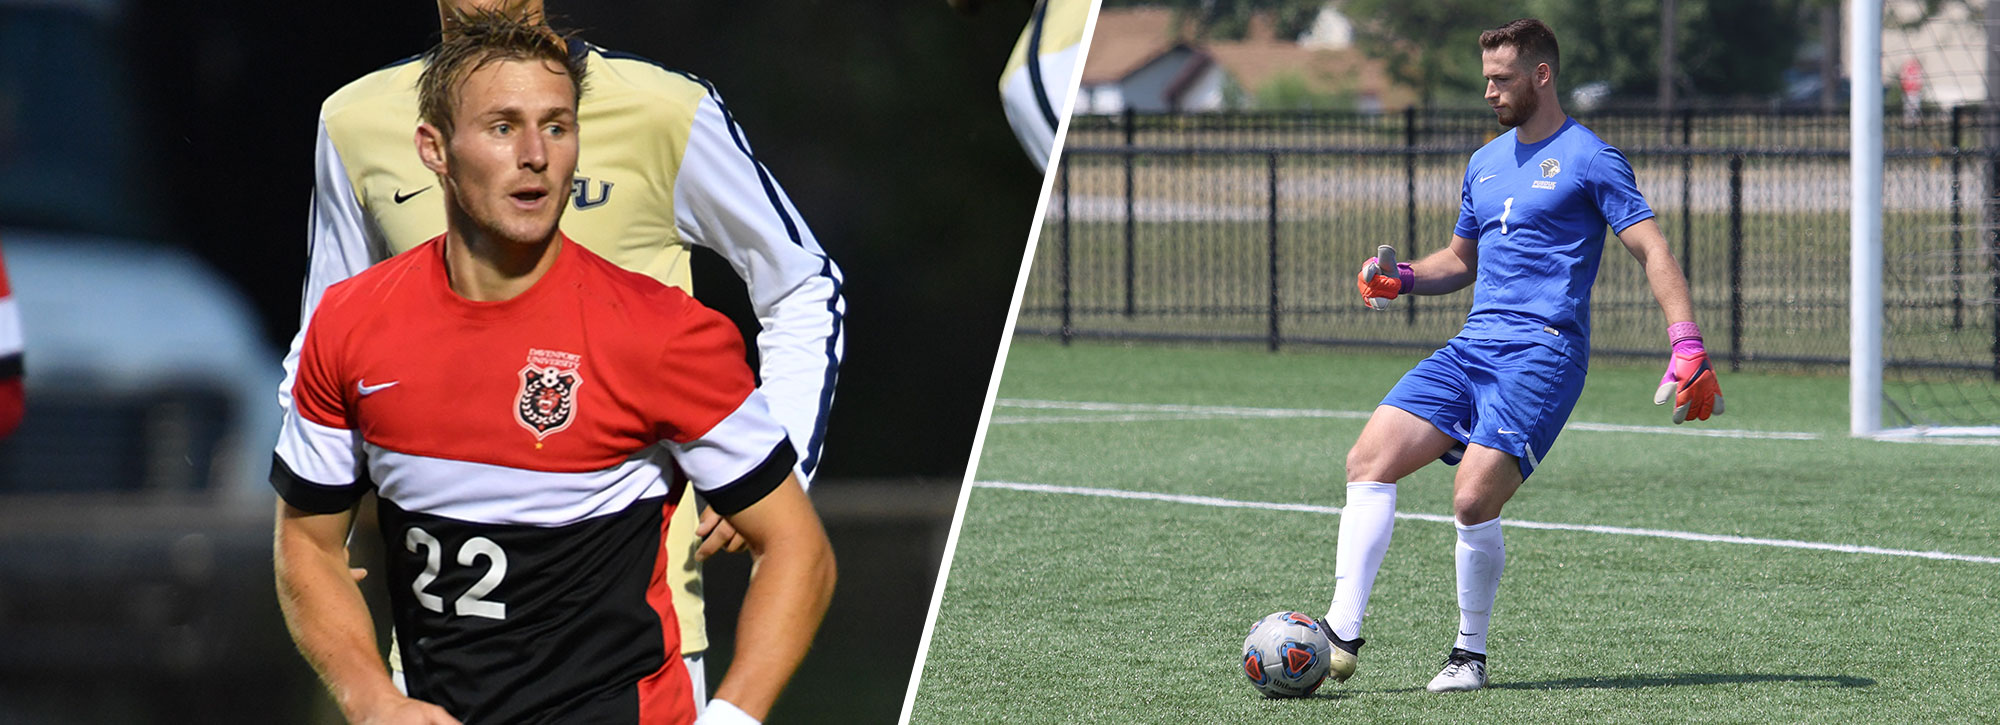 Davenport's Shrimpton, Purdue Northwest's David Collect GLIAC Men's Soccer Weekly Accolades